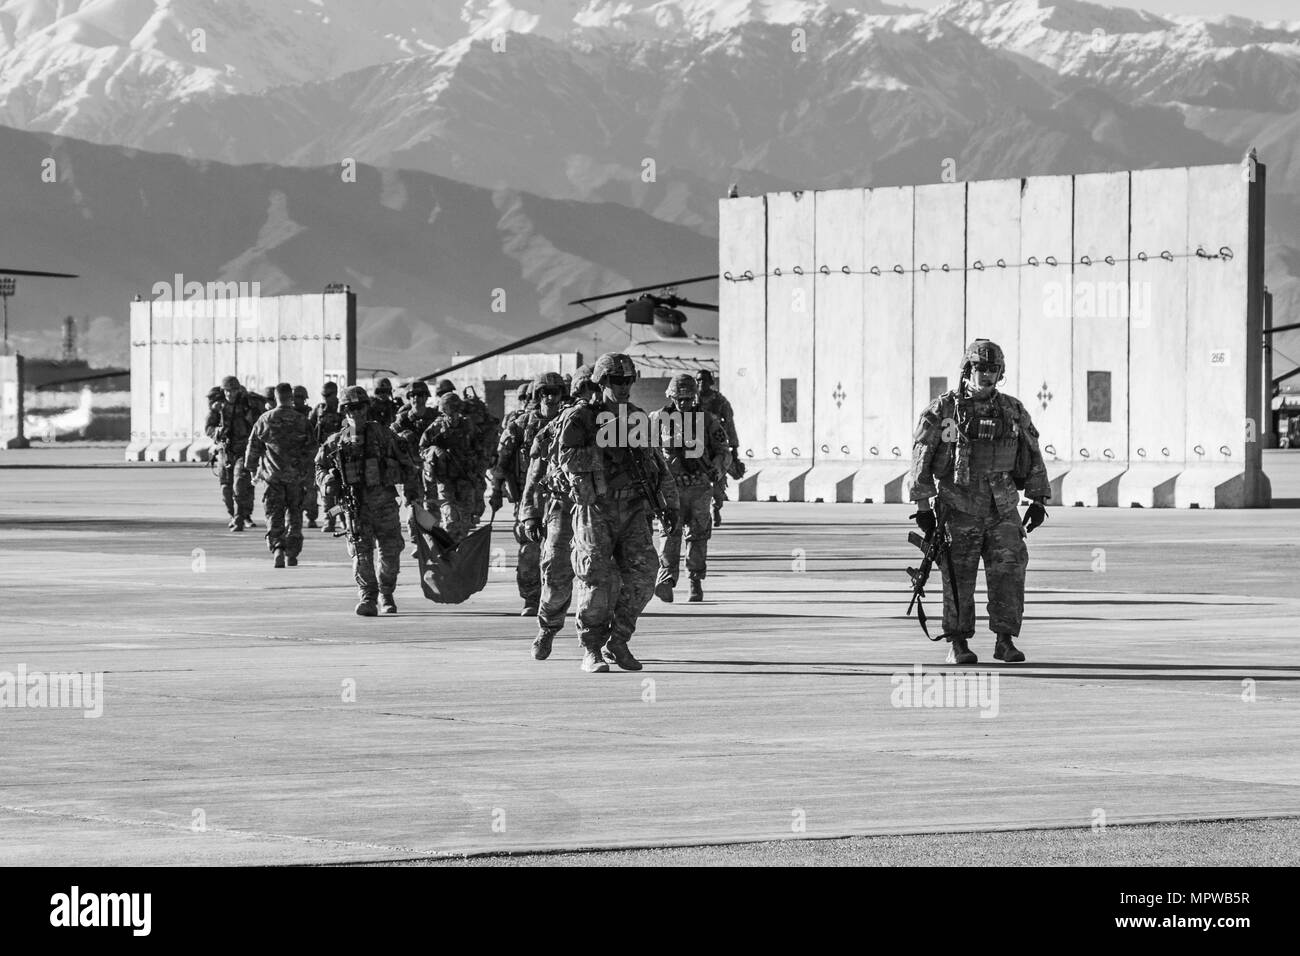 Soldiers of C Troop, 1st Squadron, 14th Cavalry Regiment, 1-2 Stryker Brigade Combat Team, conduct training and missions at Bagram Airfield, Afghanistan, April 1, 2017. Soldiers of C Troop were in Afghanistan in support of Operation Freedom Sentinel. (U.S. Army photo by Capt. Brian H. Harris) - Stock Image